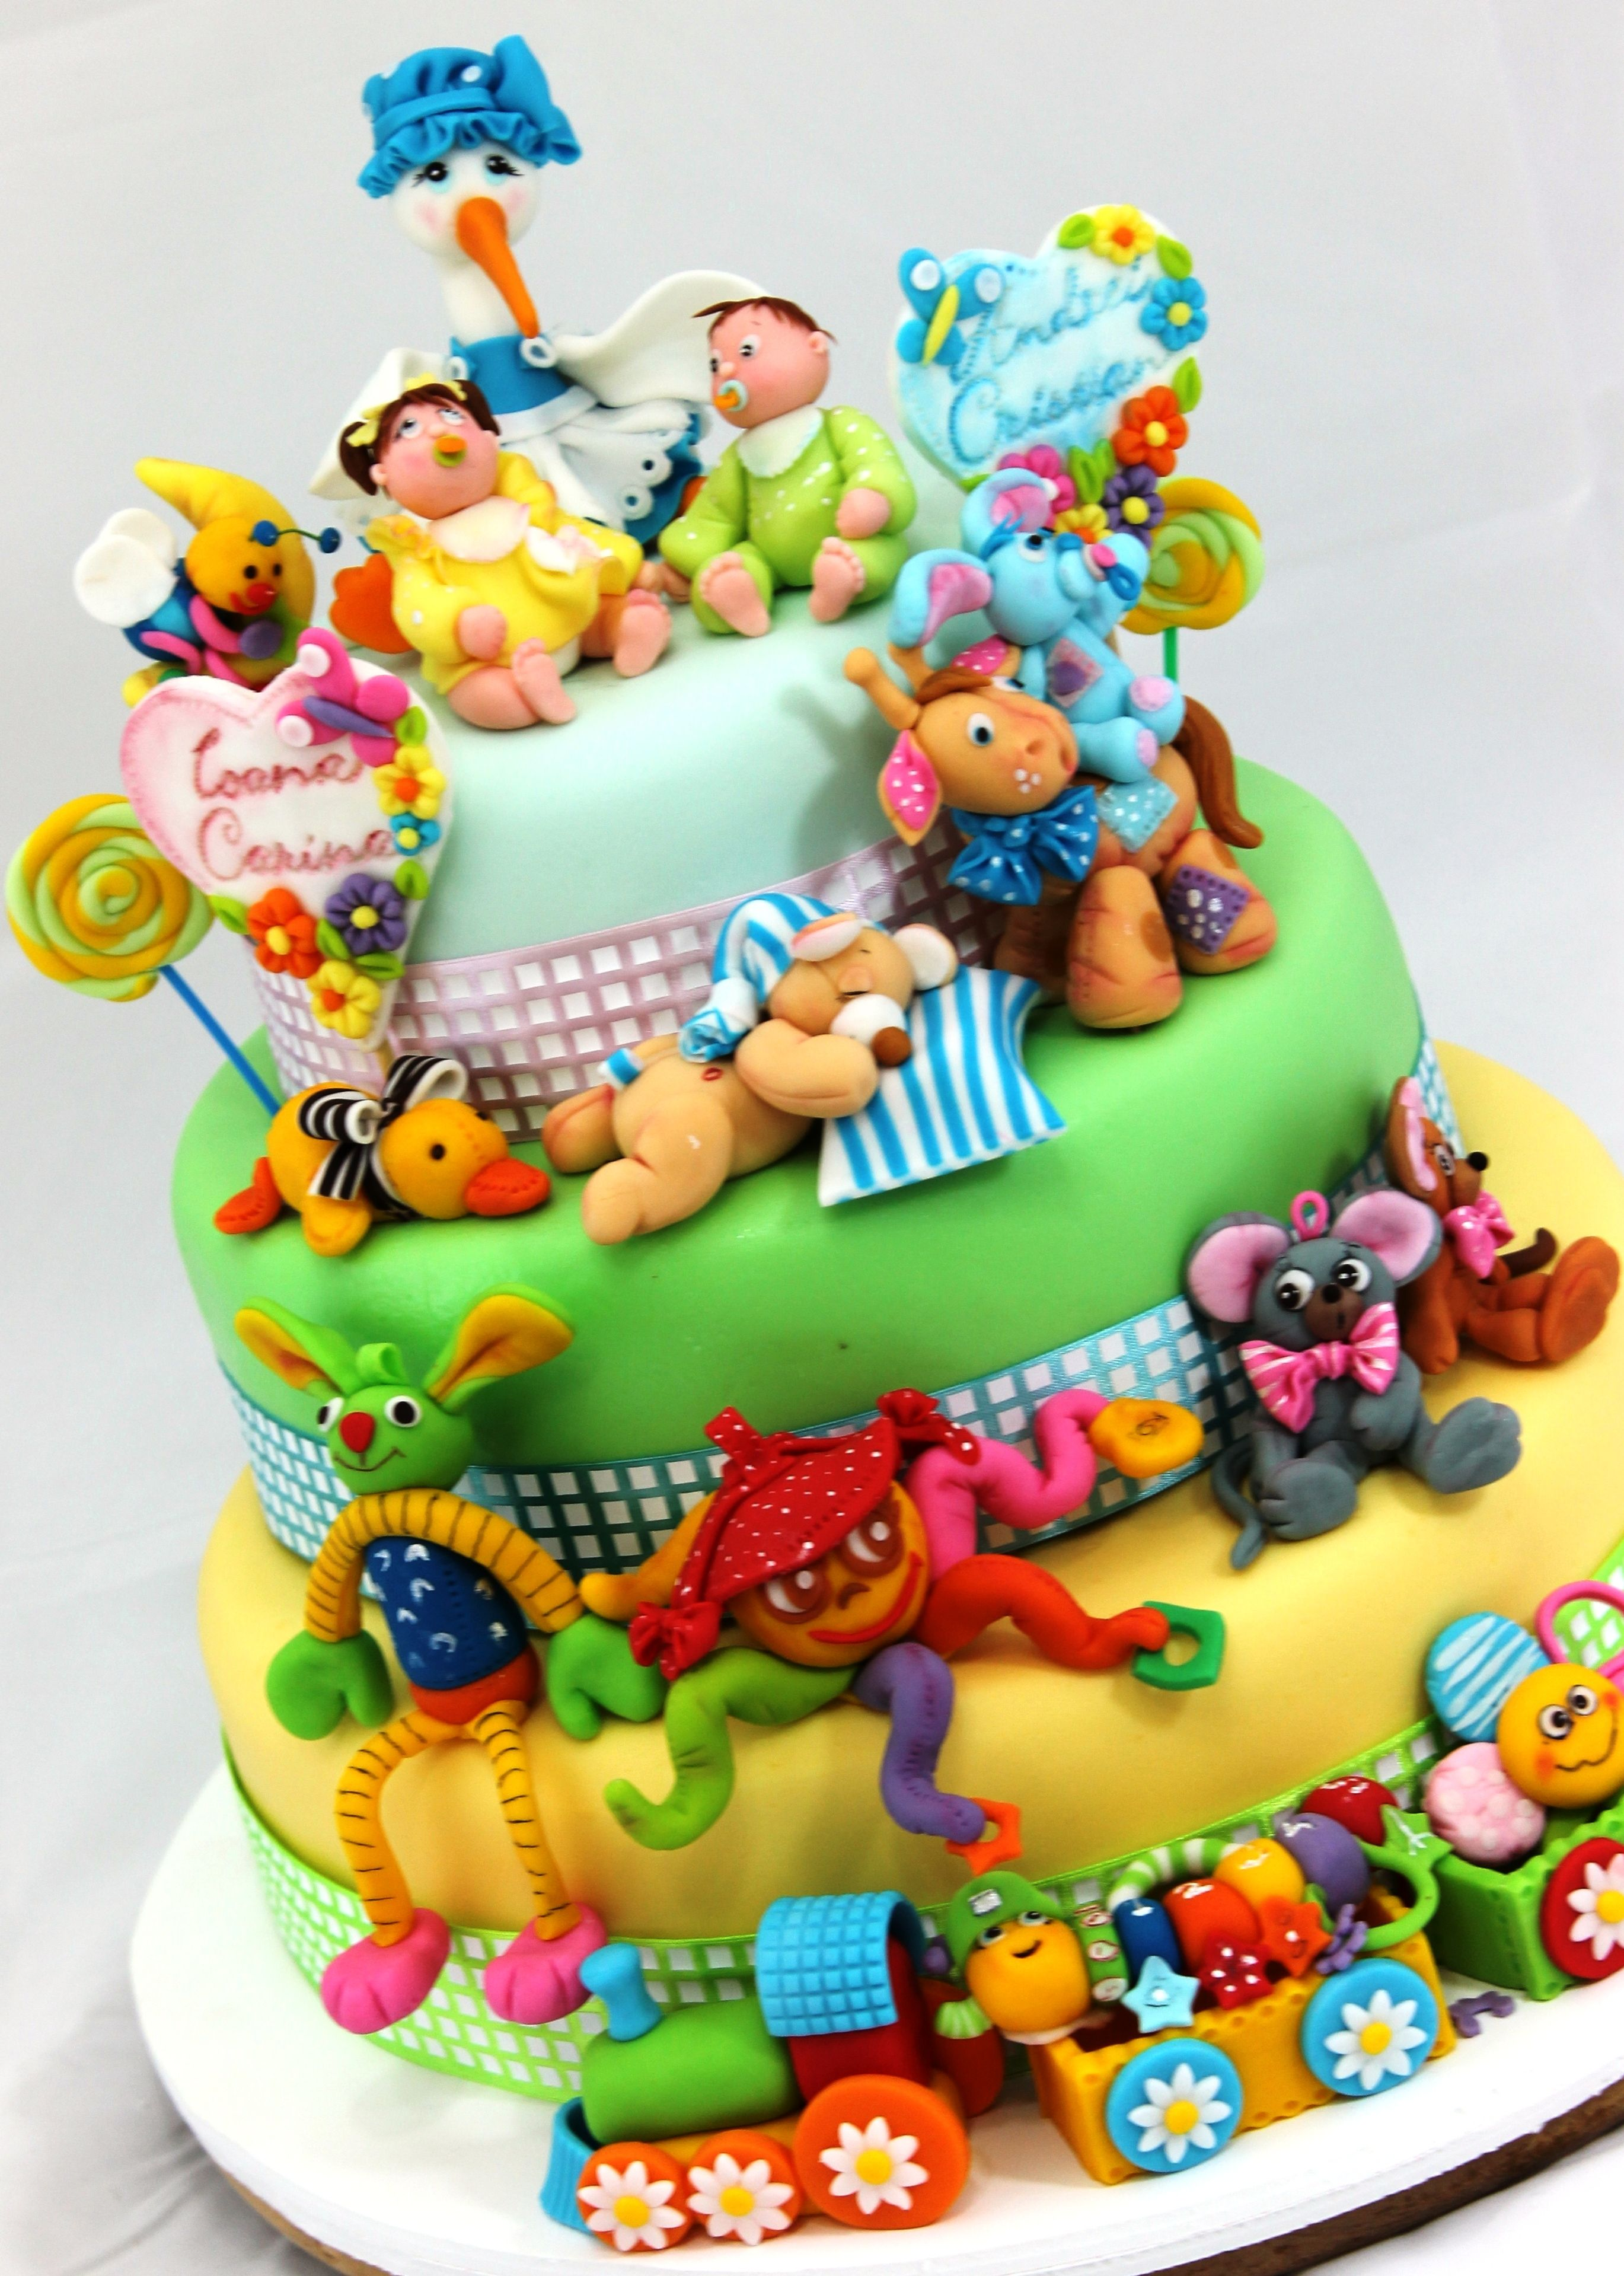 A Must See The Most Beautiful Cakes For Children From Viorica Toruri Www Viorica Torturi Ro Baby Birthday Cakes Amazing Cakes Cake